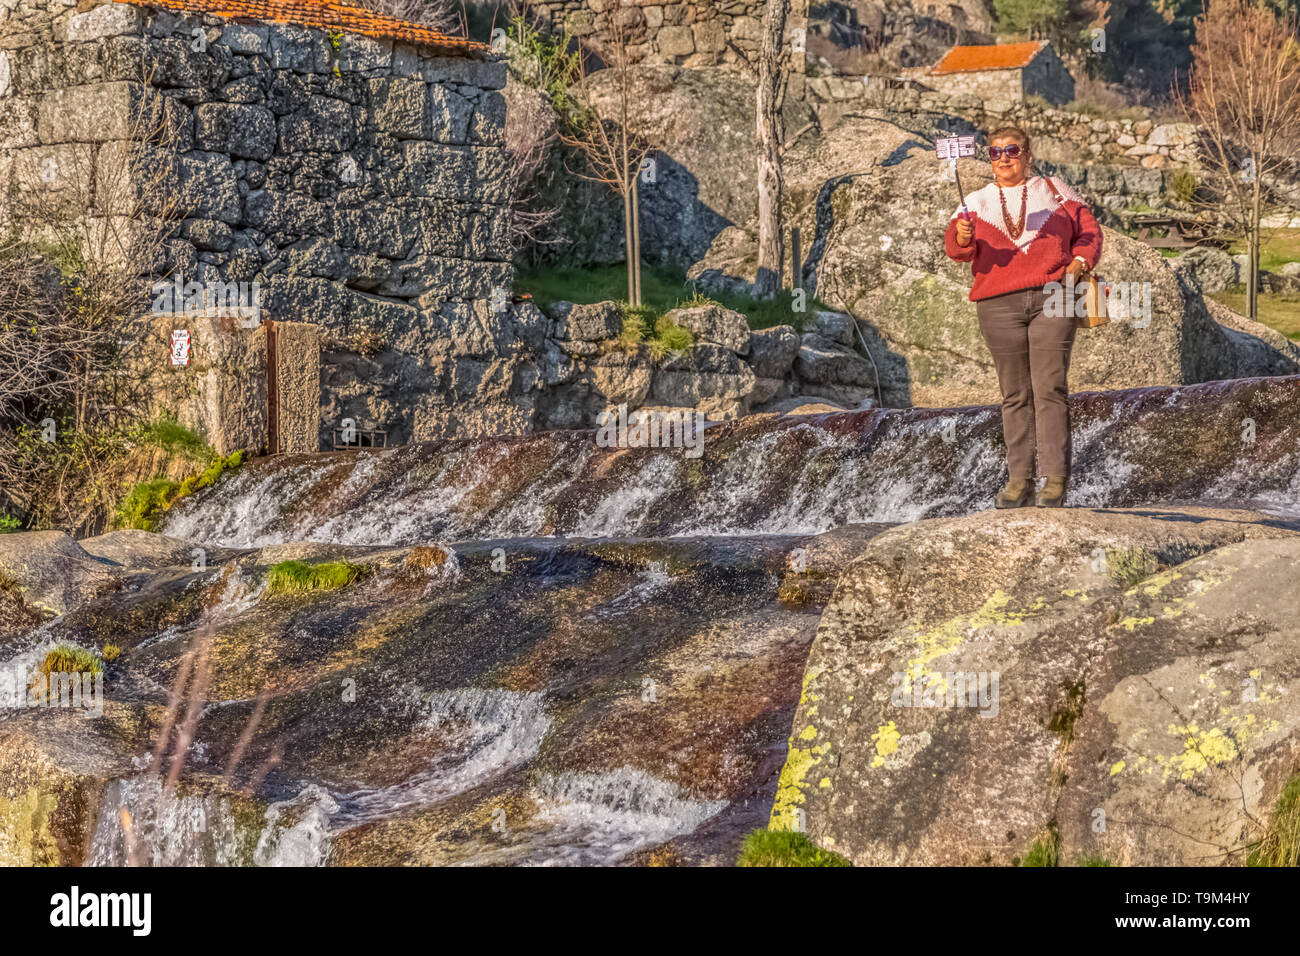 Seia / Portugal - 03 16 2019 :View of old woman taking pictures with mobile phone on stick, near the river with large granitic rocks, Estrela mountain - Stock Image